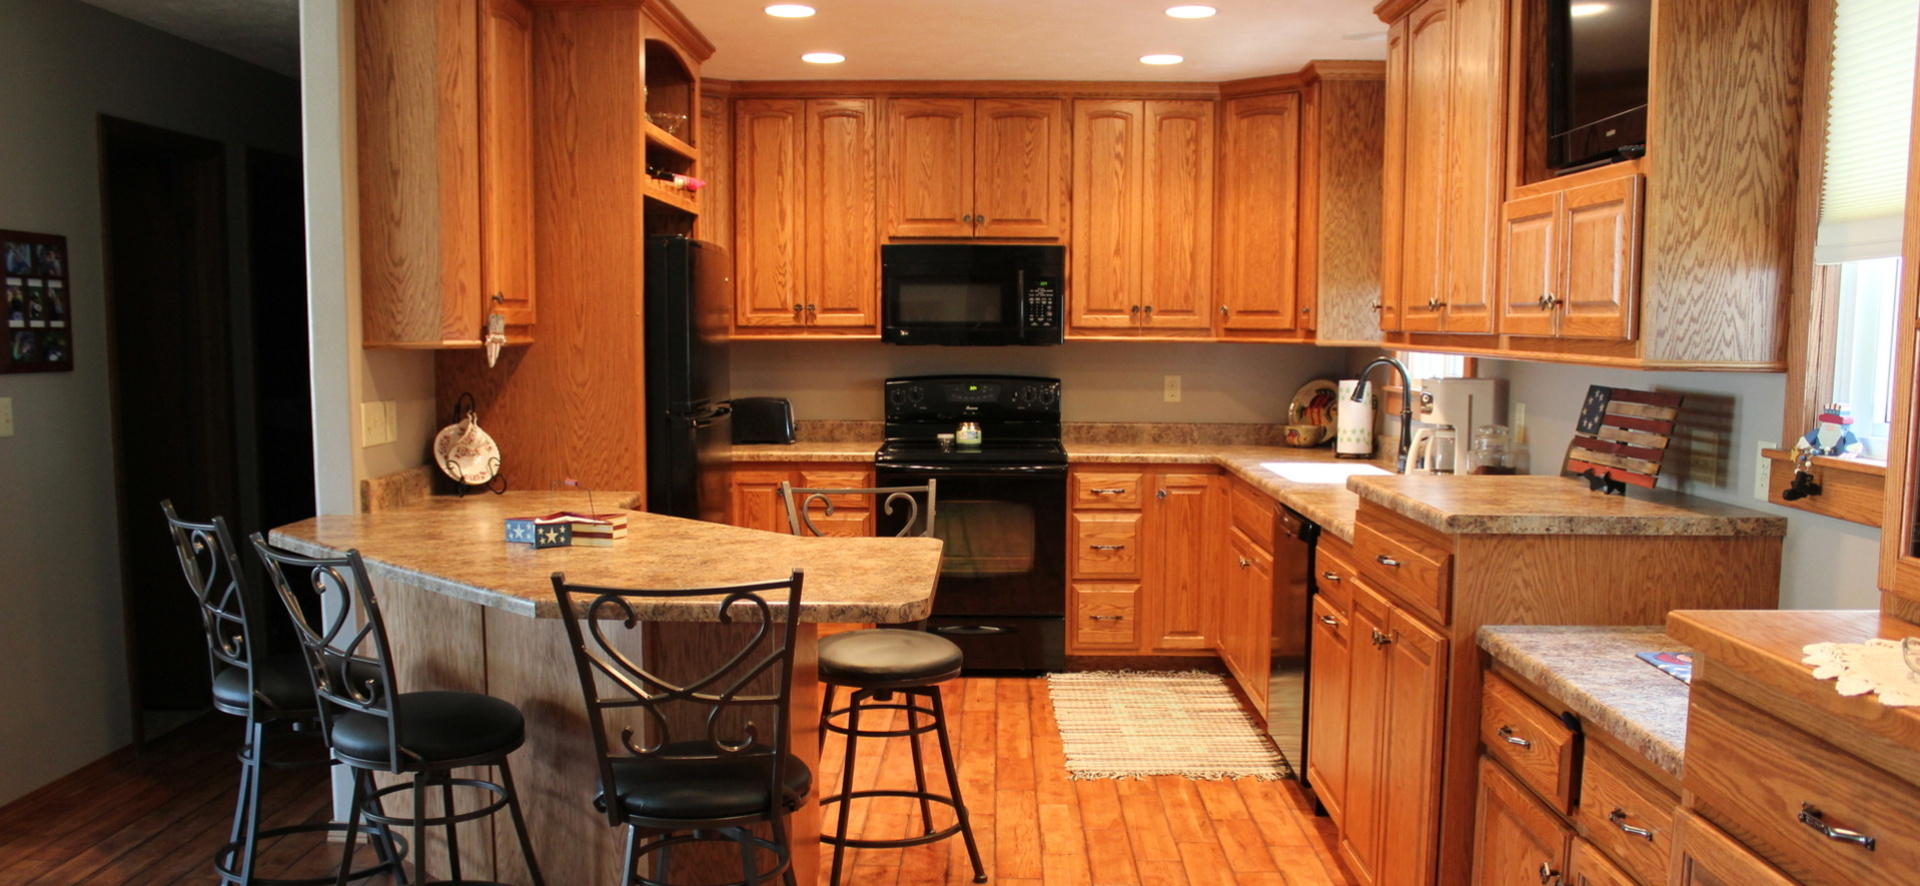 2 Home Page Kitchen